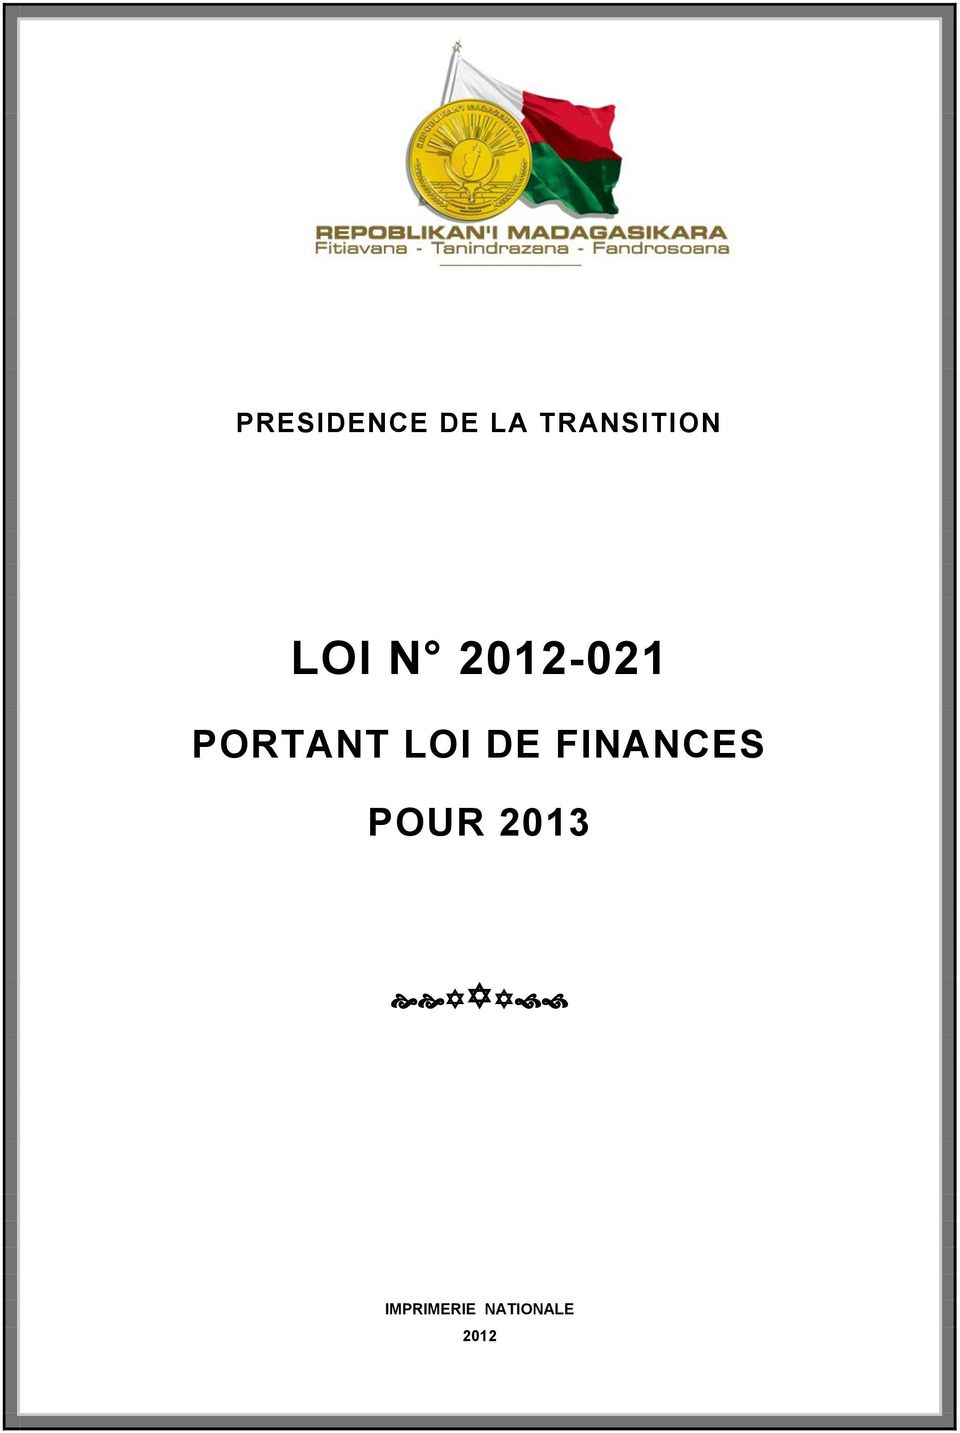 PORTANT LOI DE FINANCES